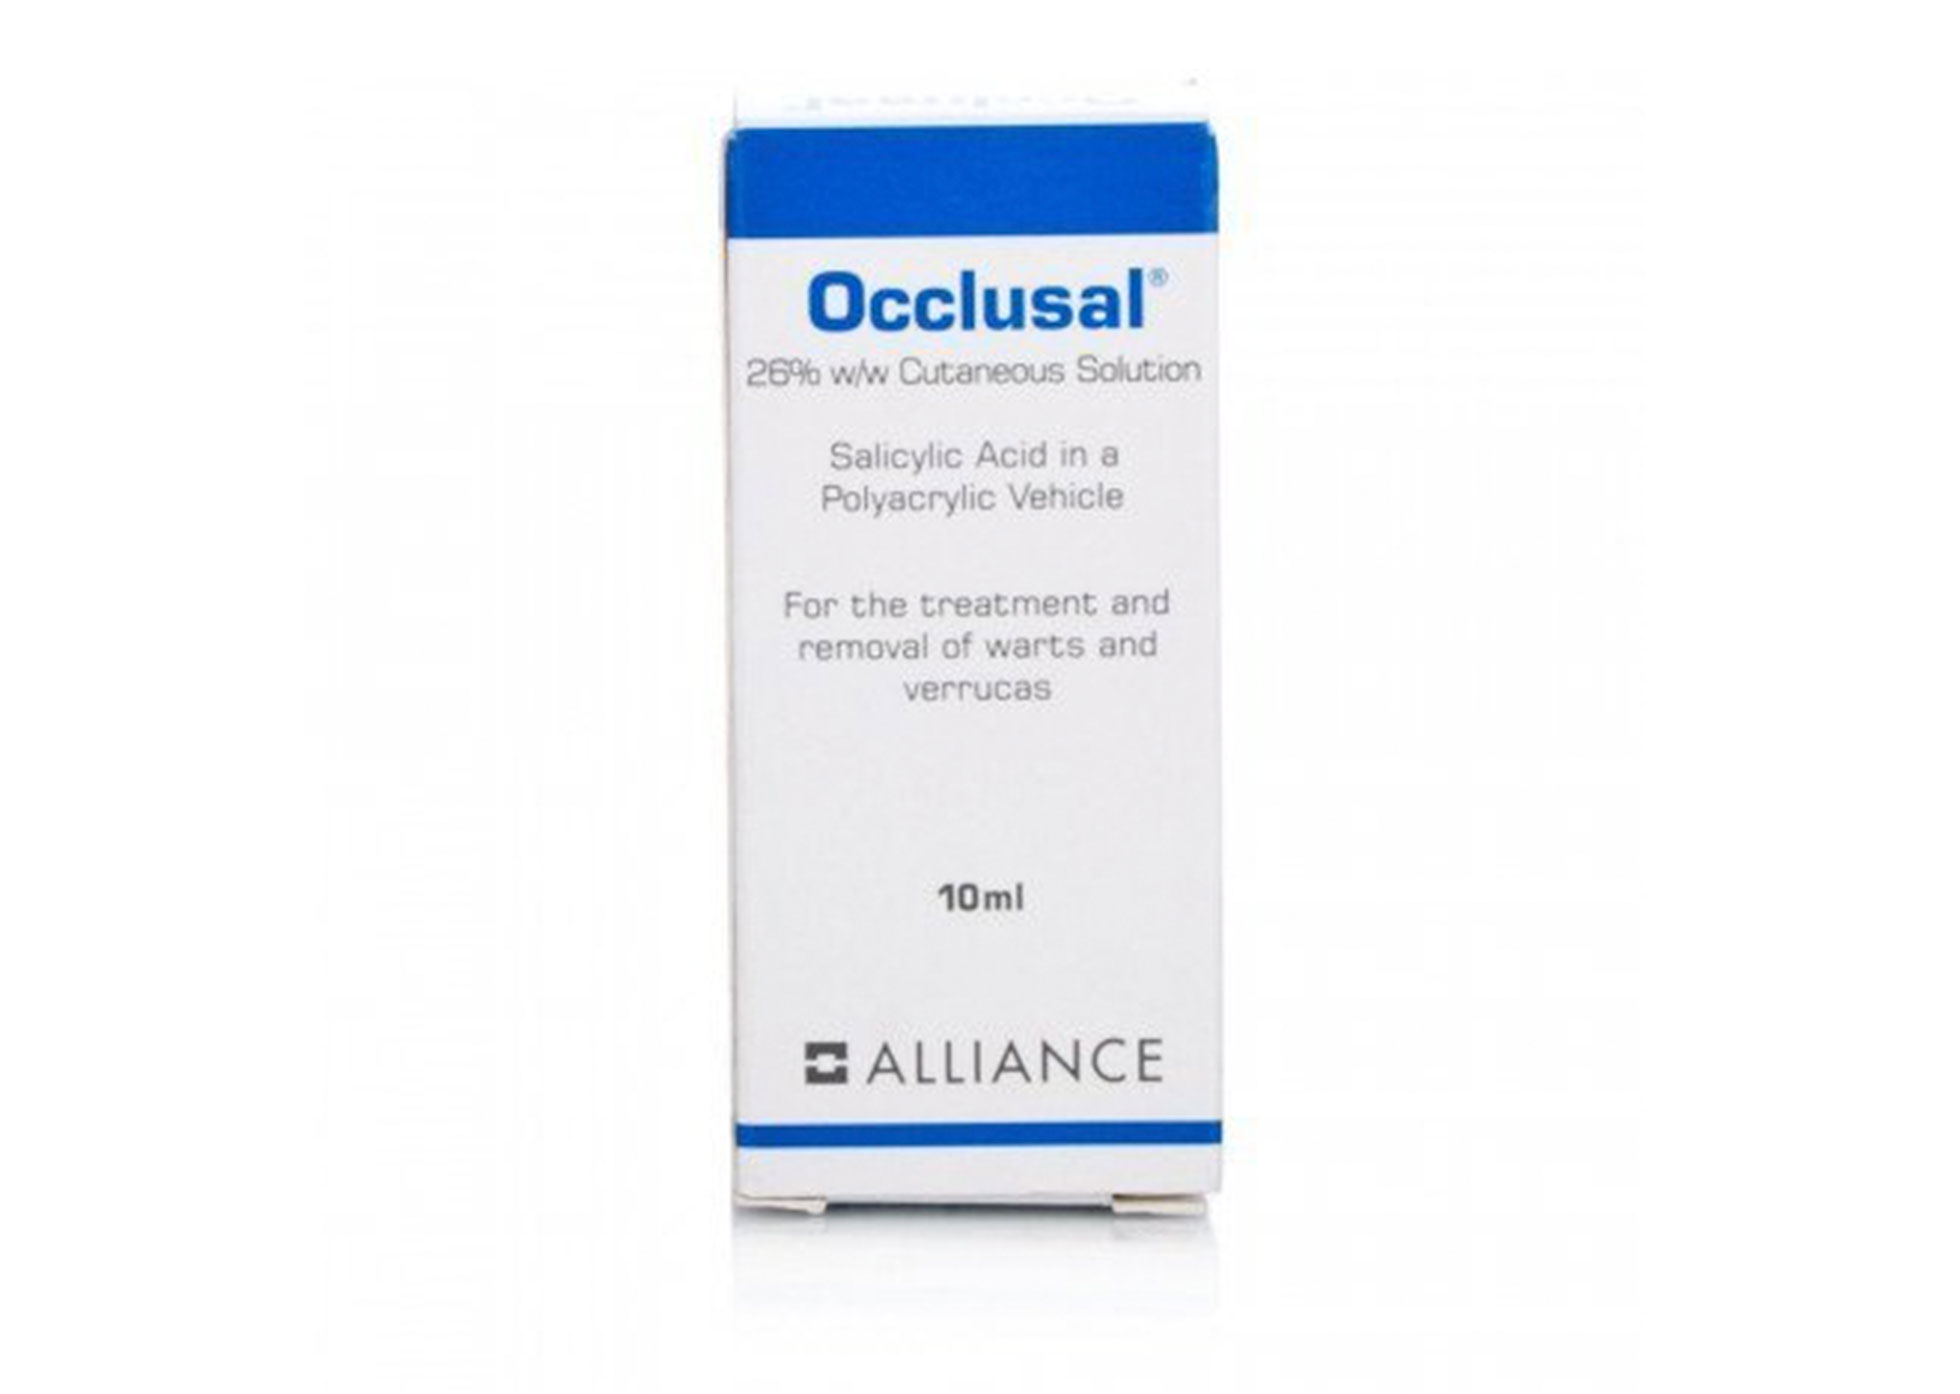 P' Occlusal - 10ml Bottle